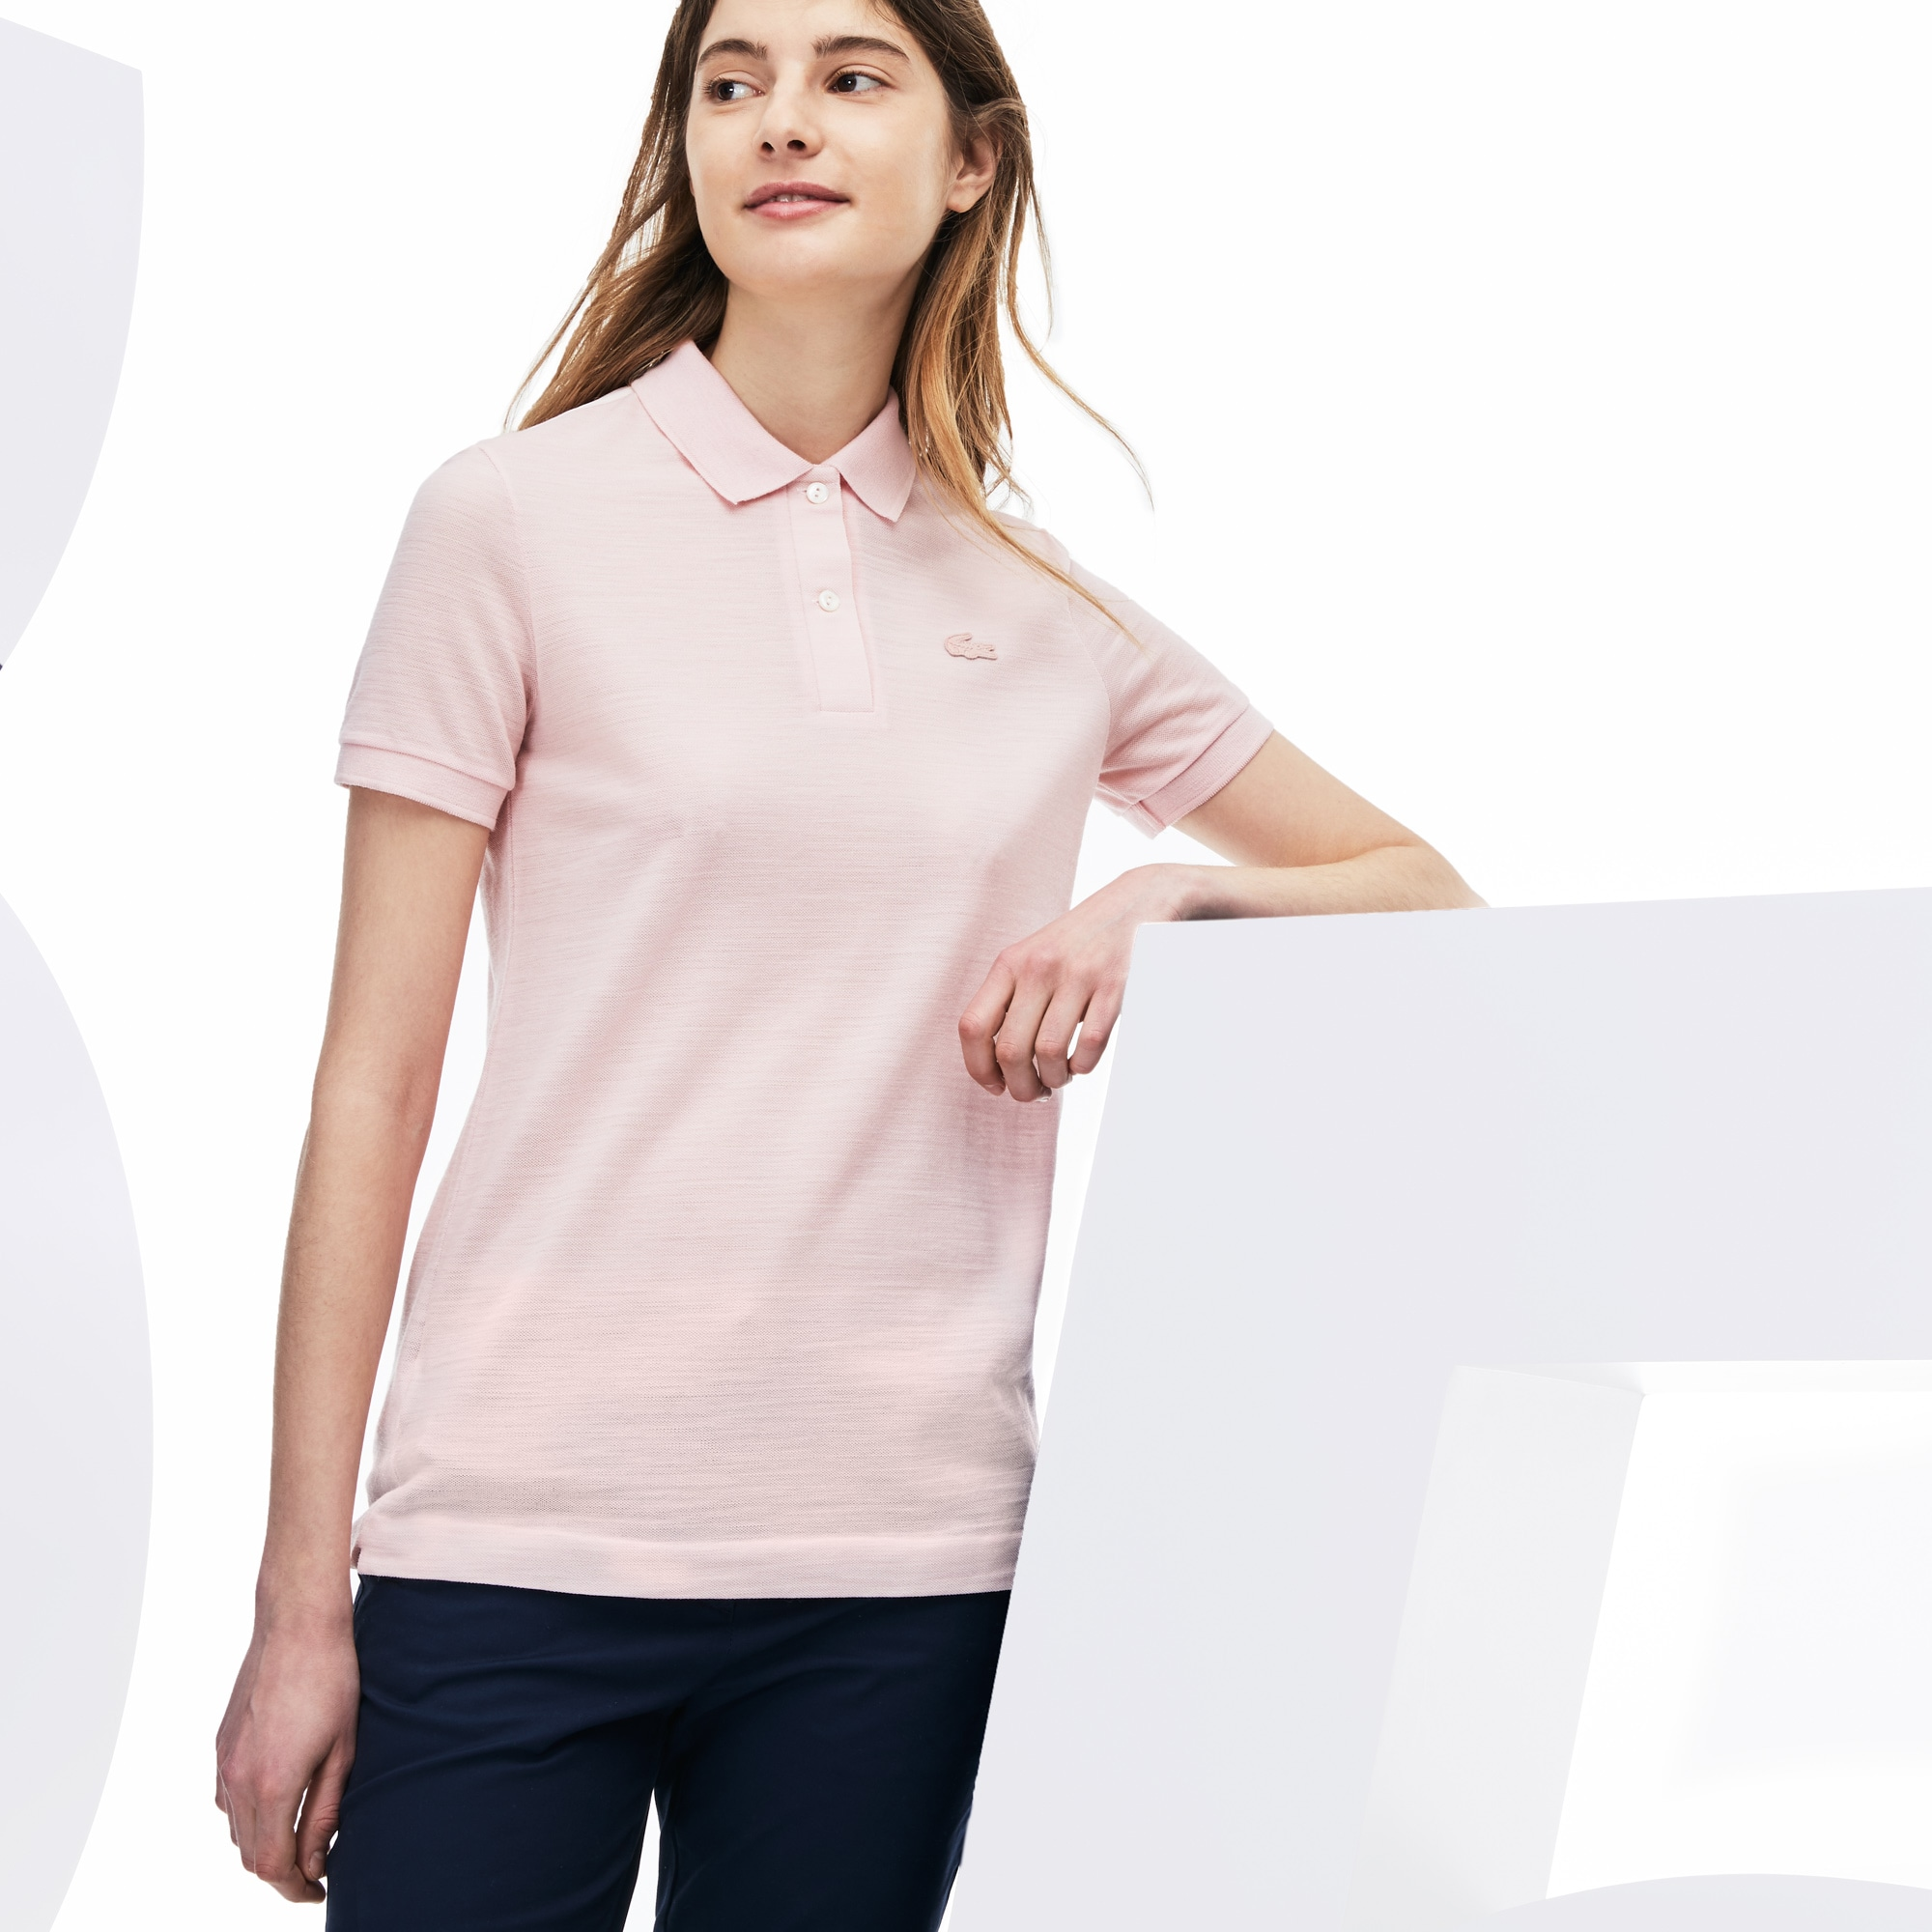 Women's Lacoste 85th Anniversary Limited Edition Classic Fit Wool Piqué Polo